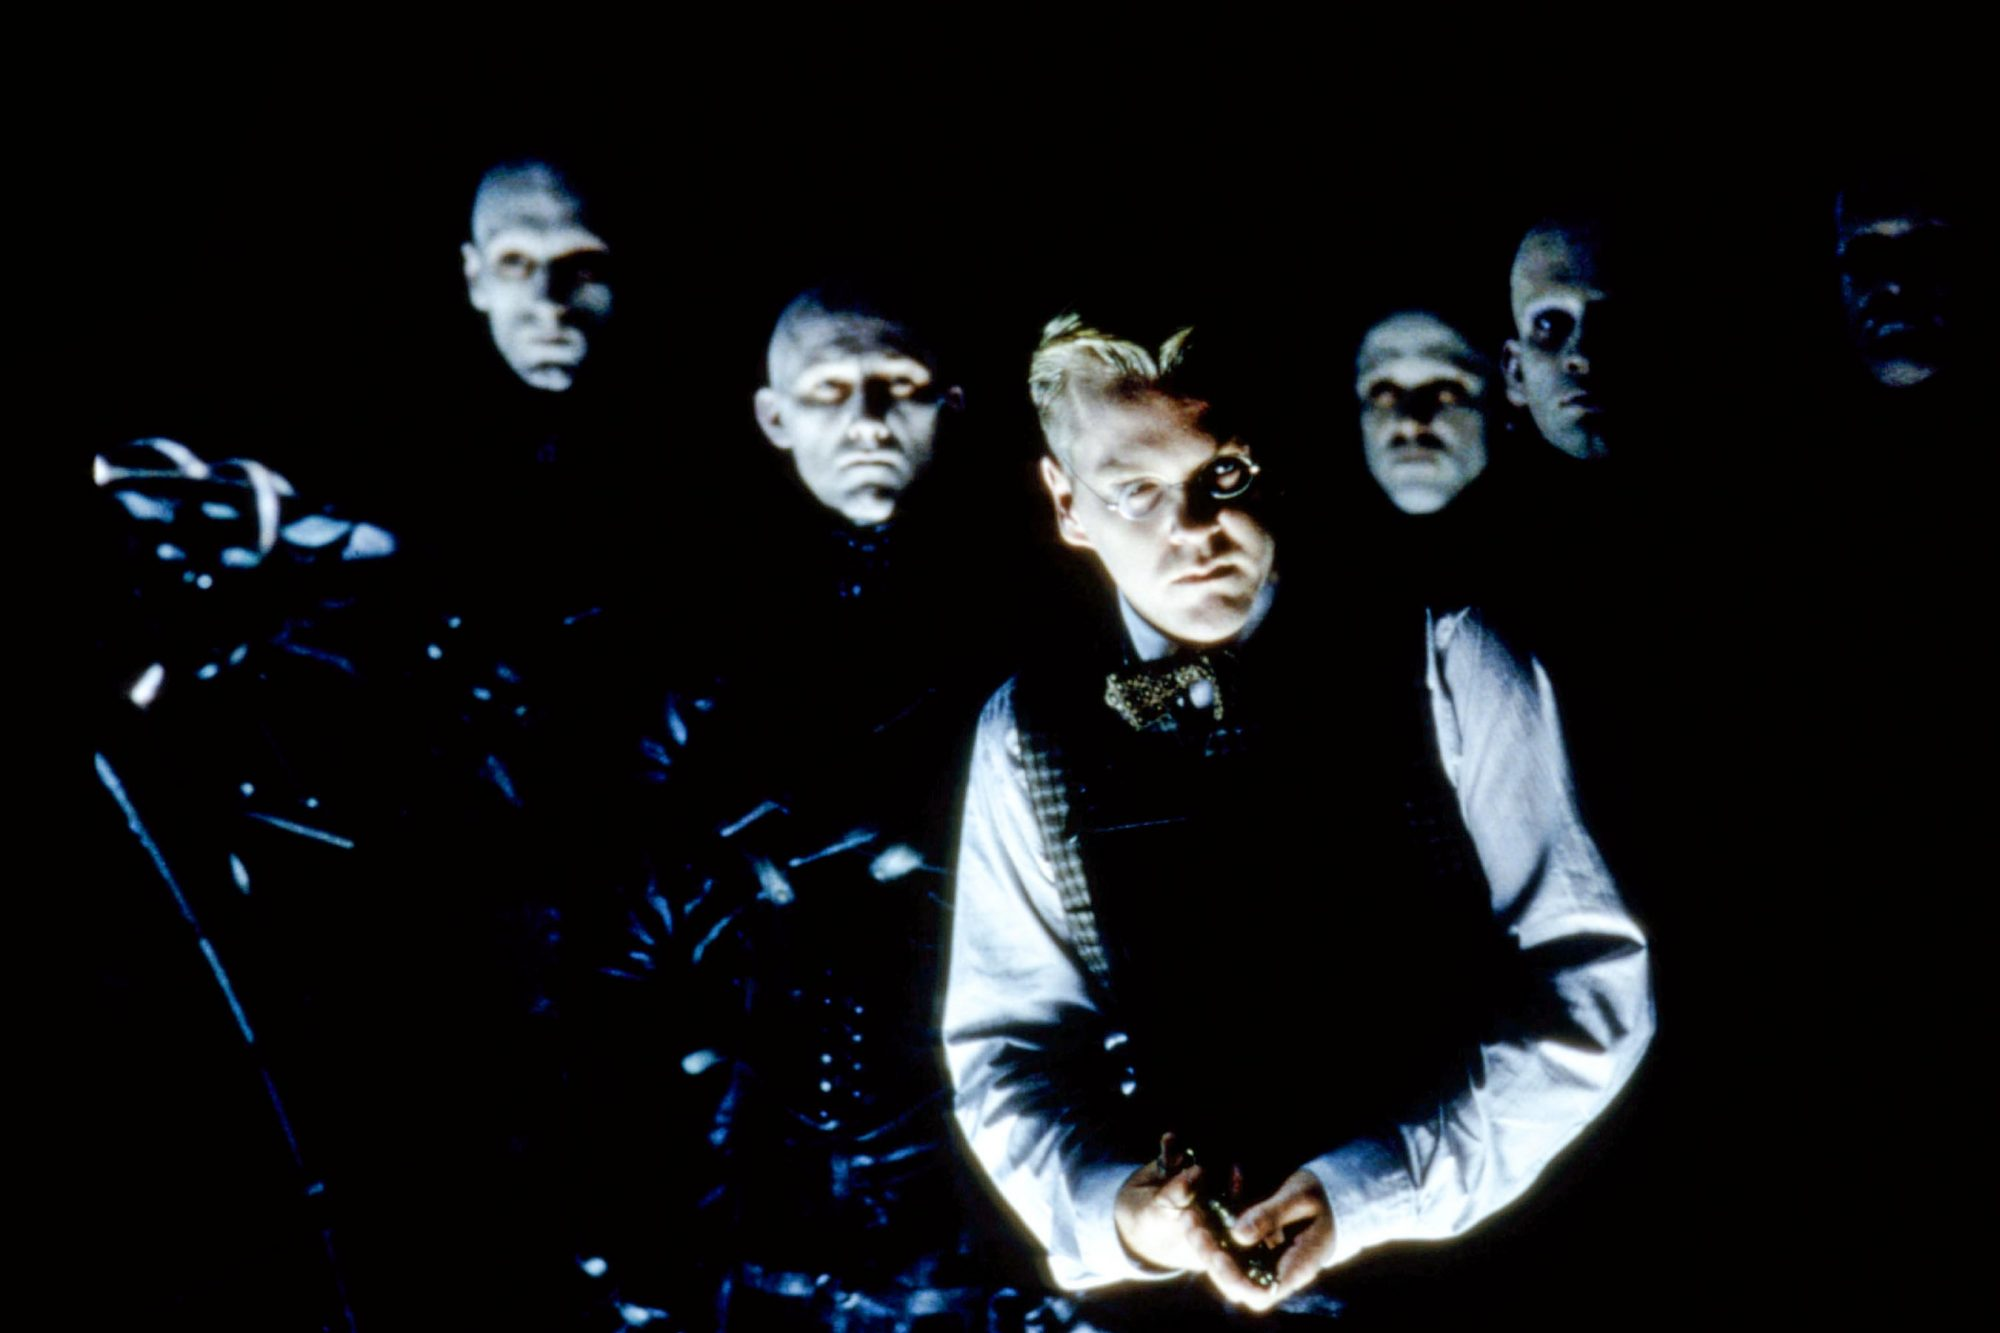 DARK CITY, Kiefer Sutherland, 1998, (c)New Line Cinema/courtesy Everett Collection